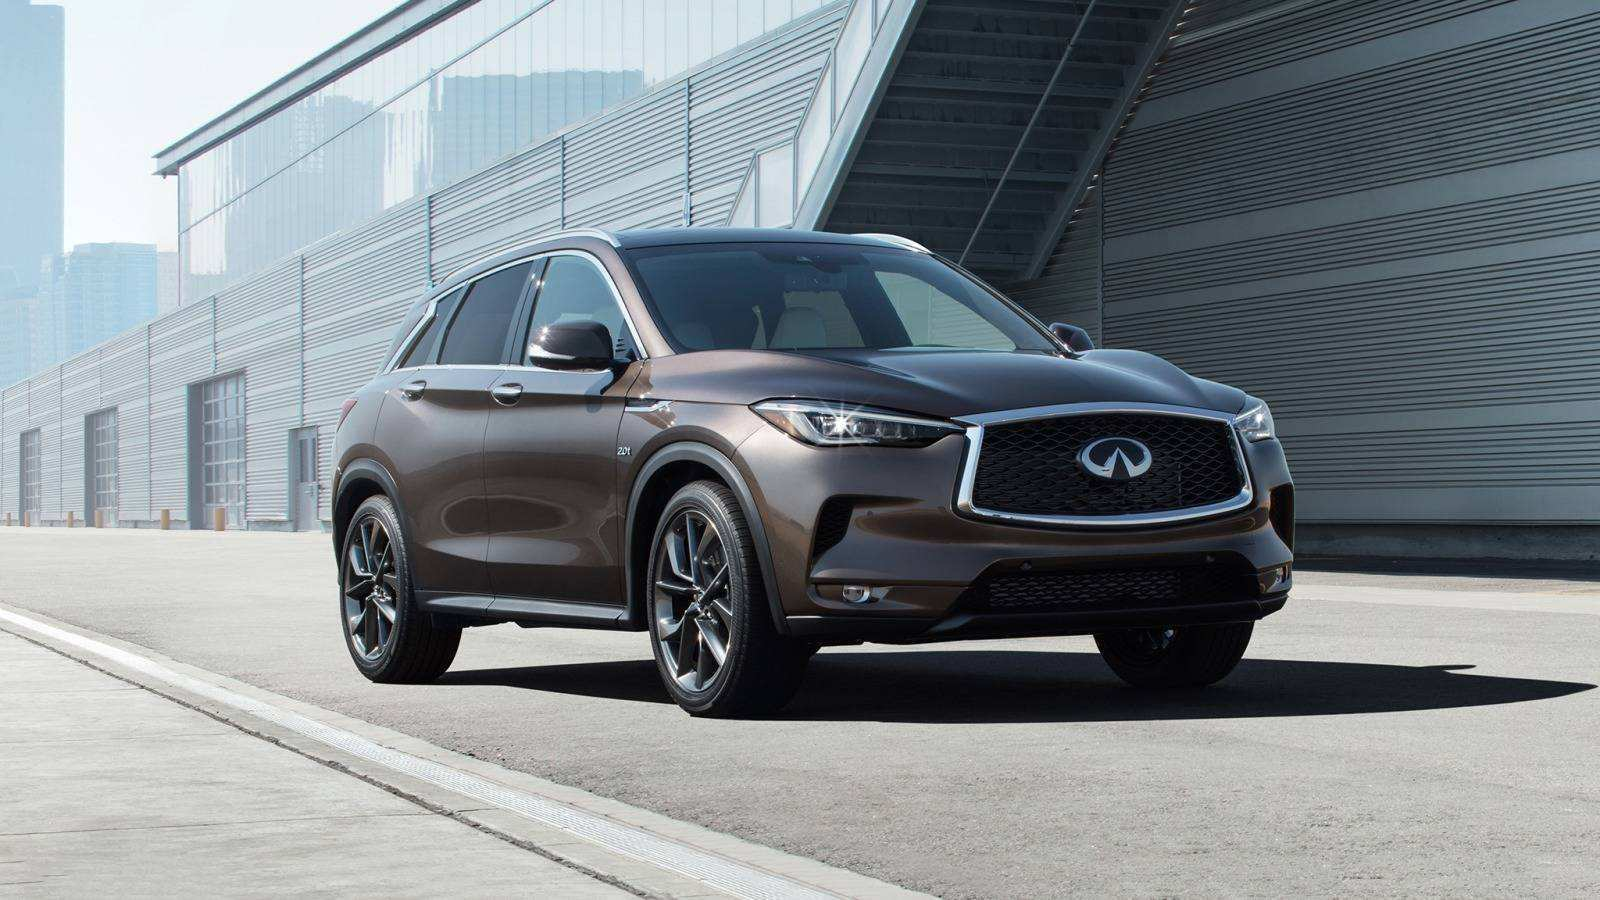 90 The 2019 Infiniti Qx50 Engine with 2019 Infiniti Qx50